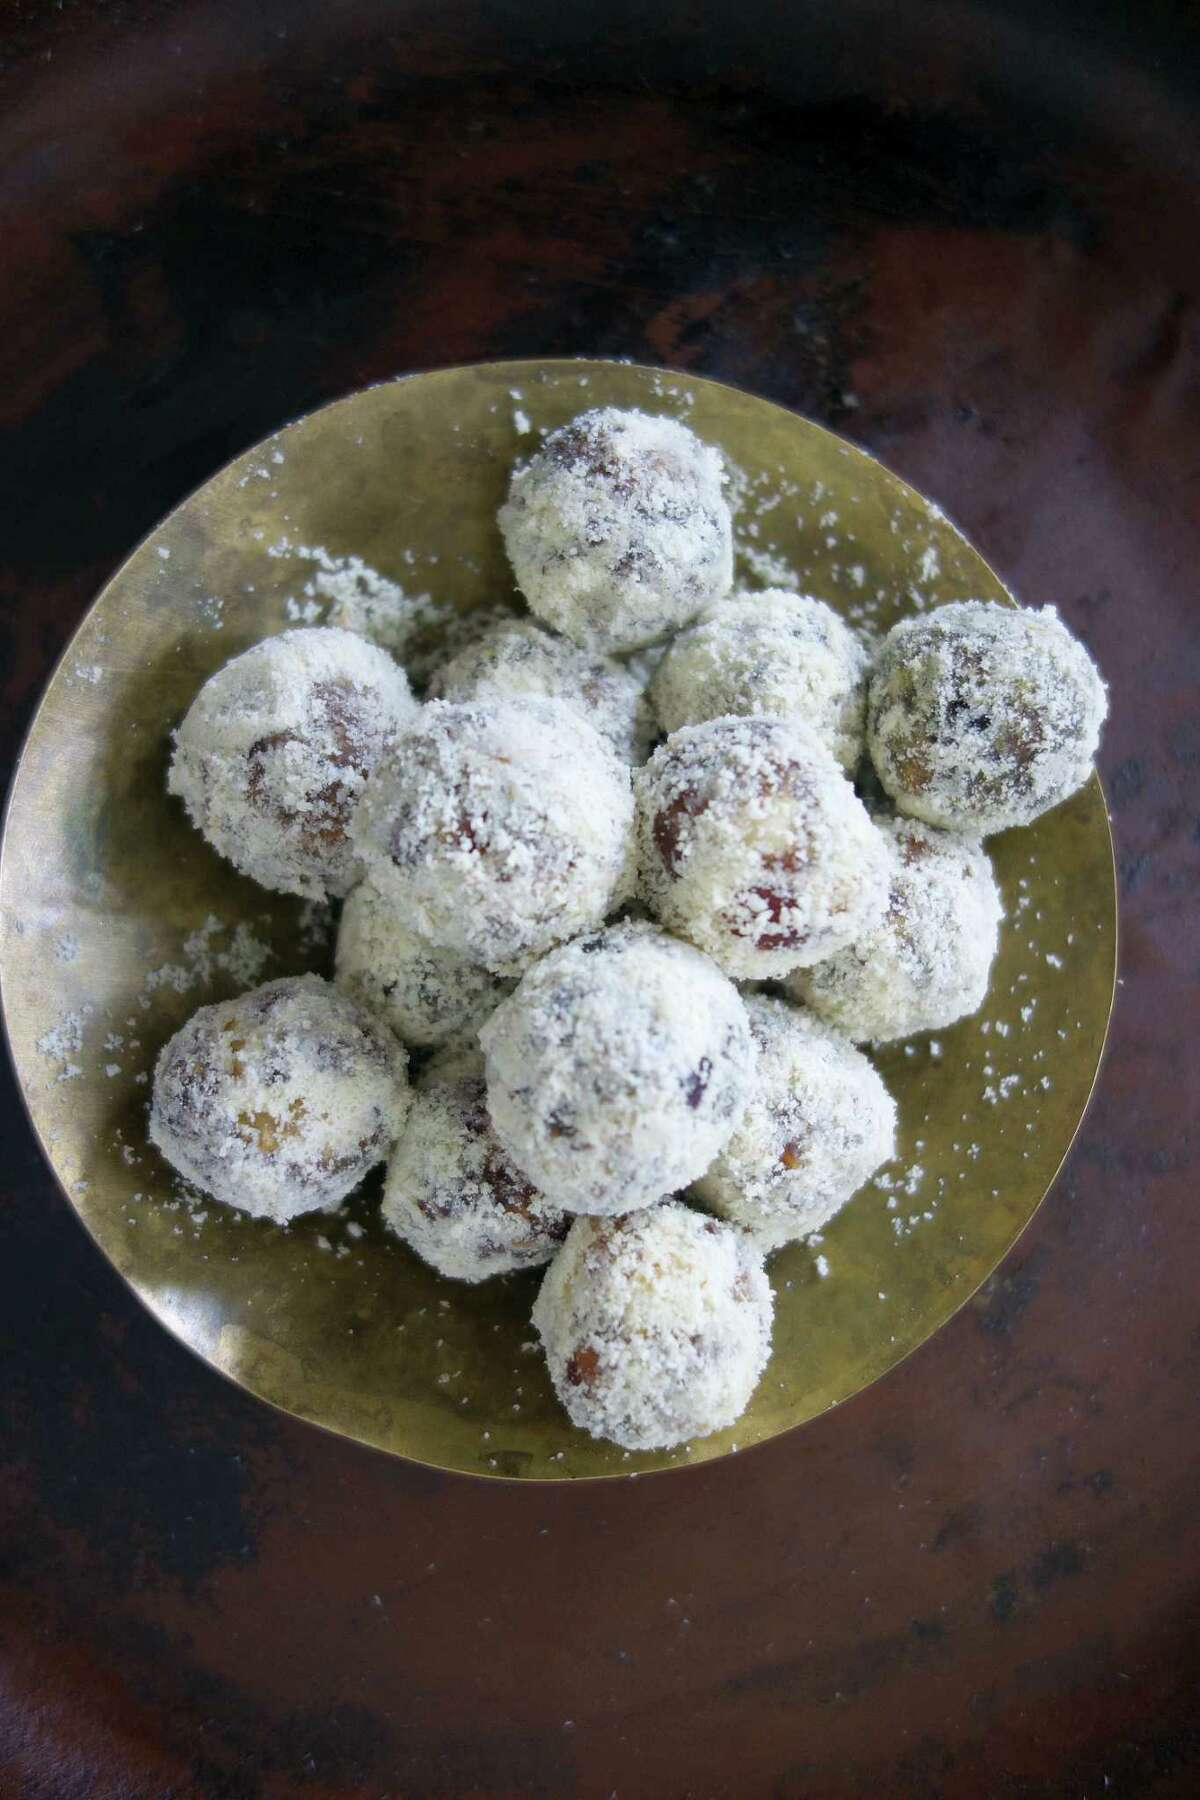 This recipe is a twist on an ancient Indian sweet recipe called khajur pak often found piled high in pyramids in Delhi sweet shops.